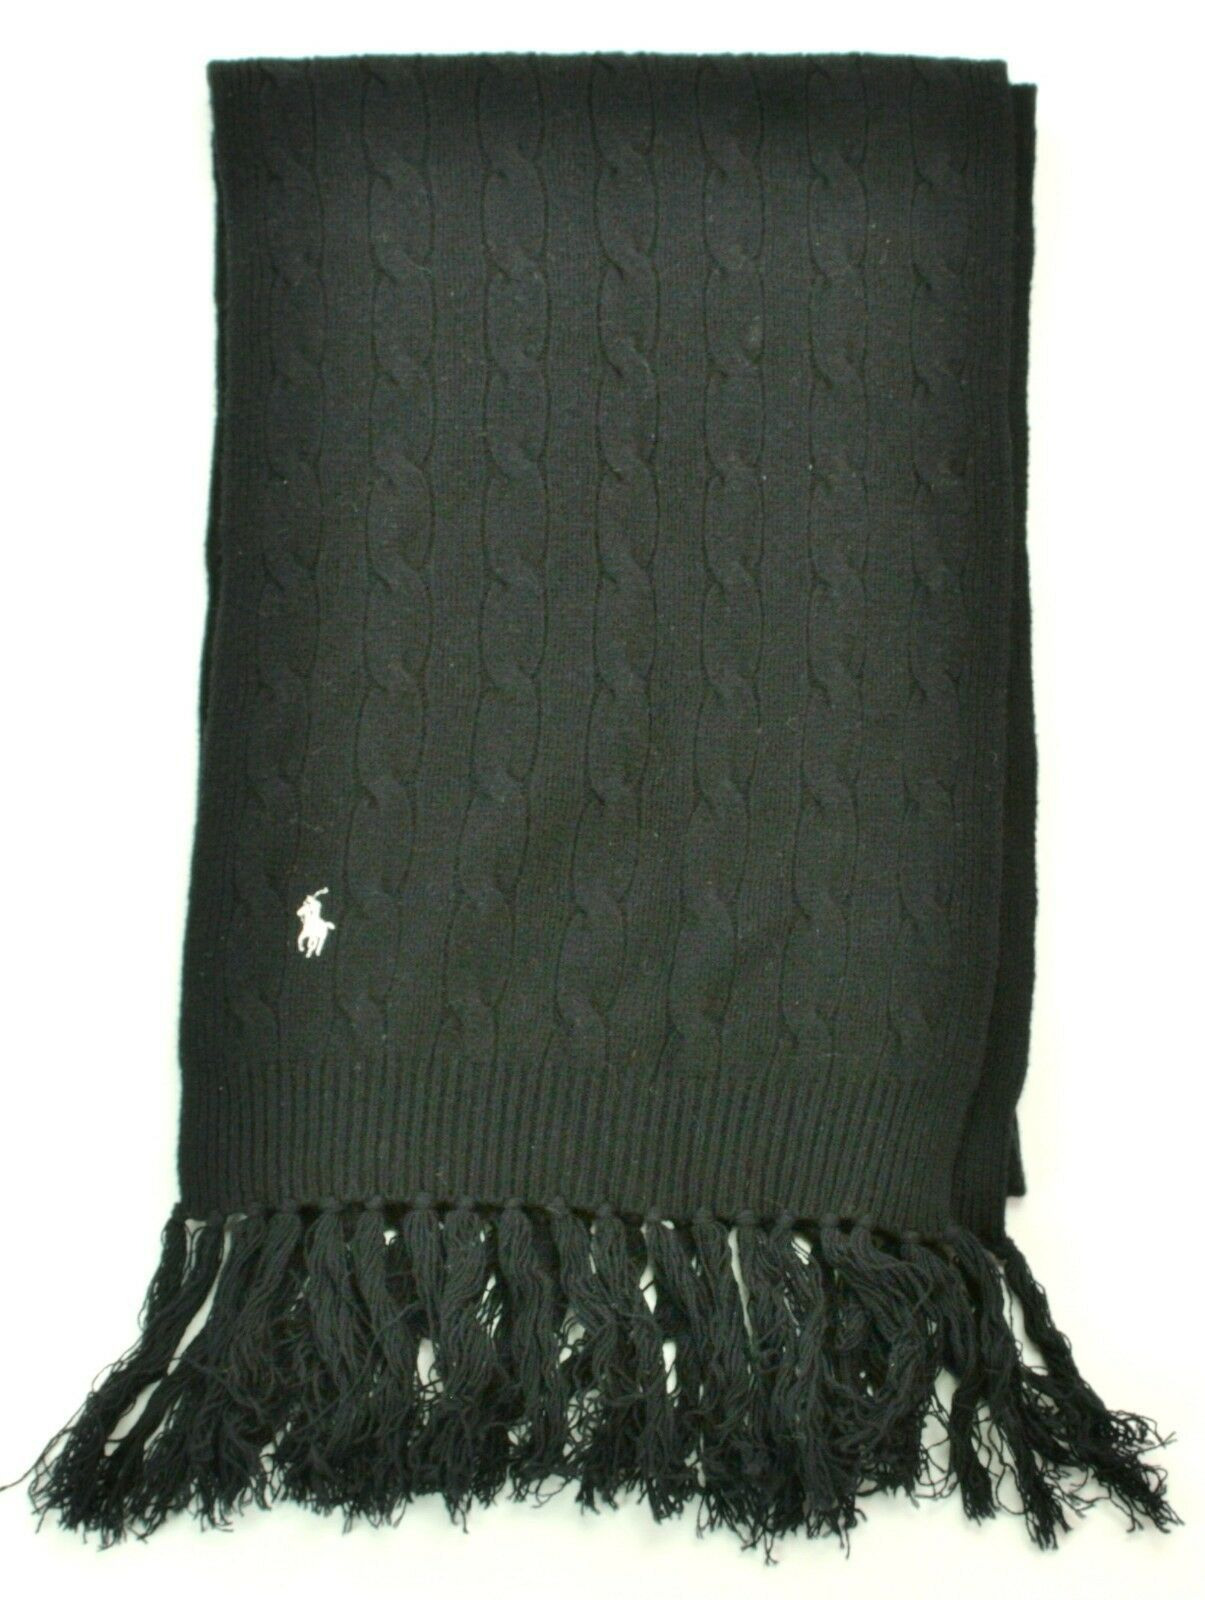 Ralph Lauren Scarf Black Lambs Wool Cashmere Blend Cable Knit Unisex - $101.03